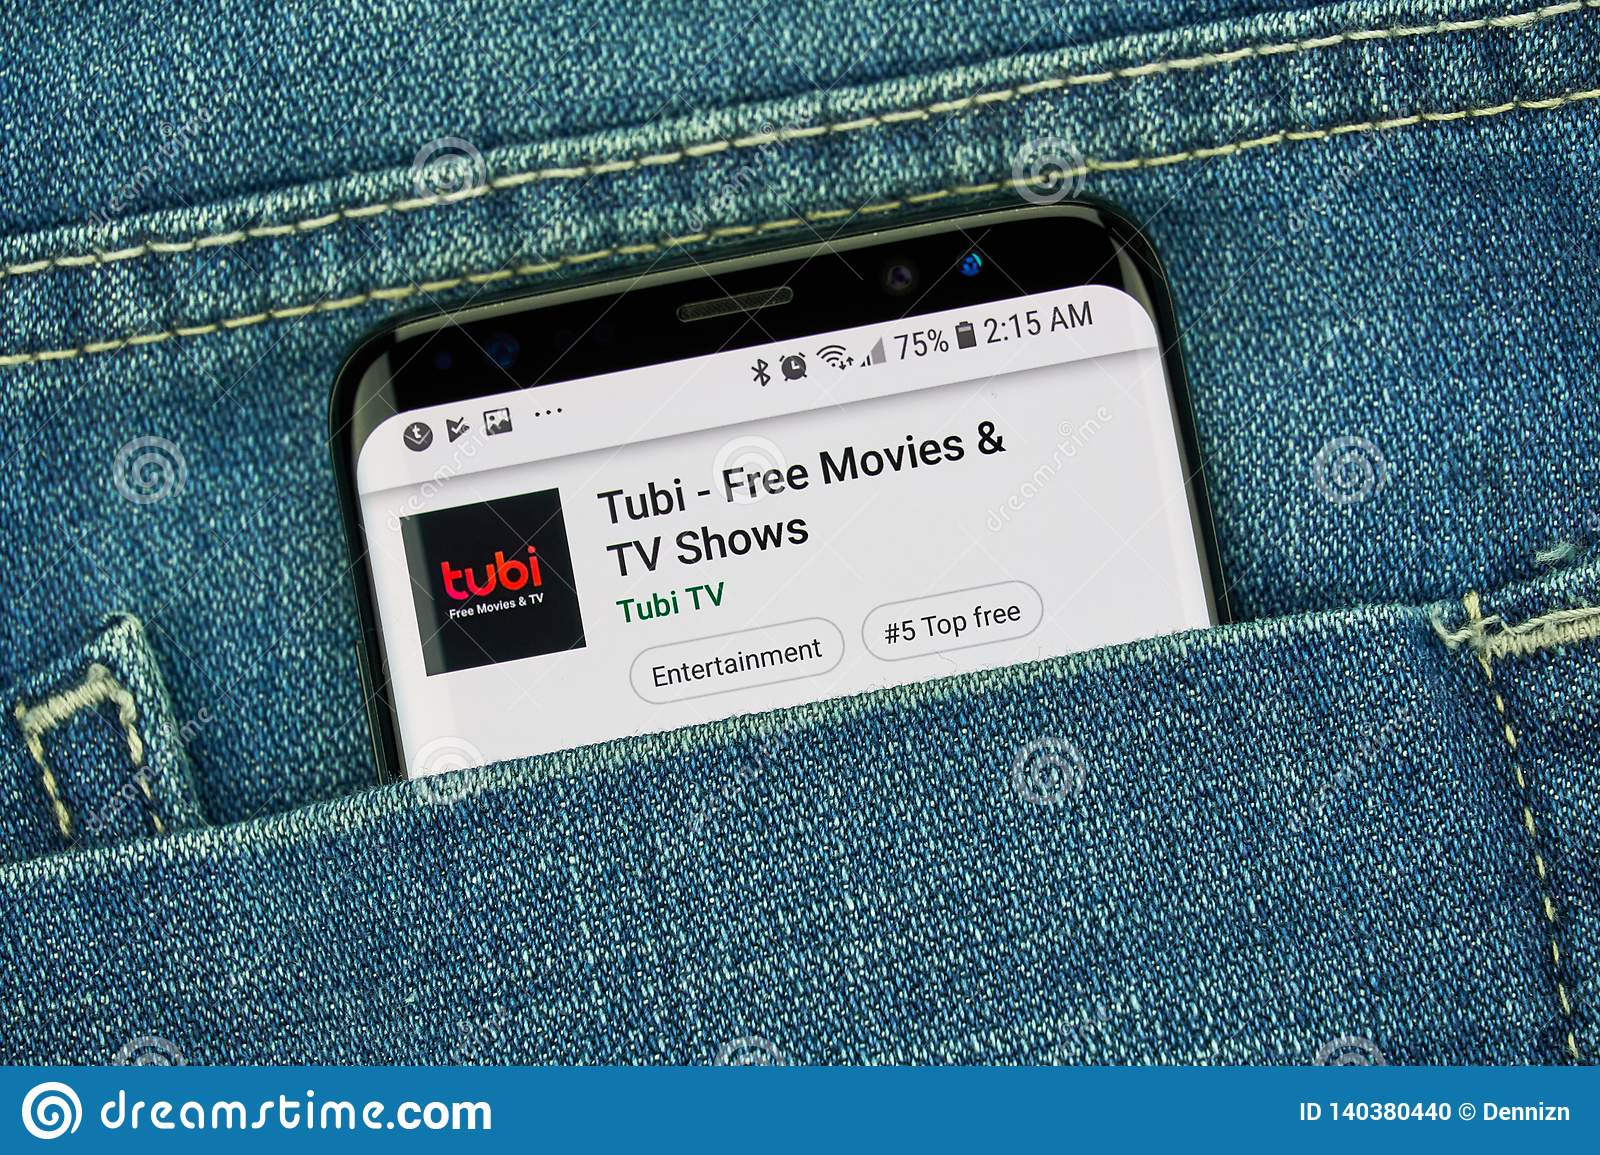 Tubi Tv Mobile App On Samsung S8 Editorial Image - Image of